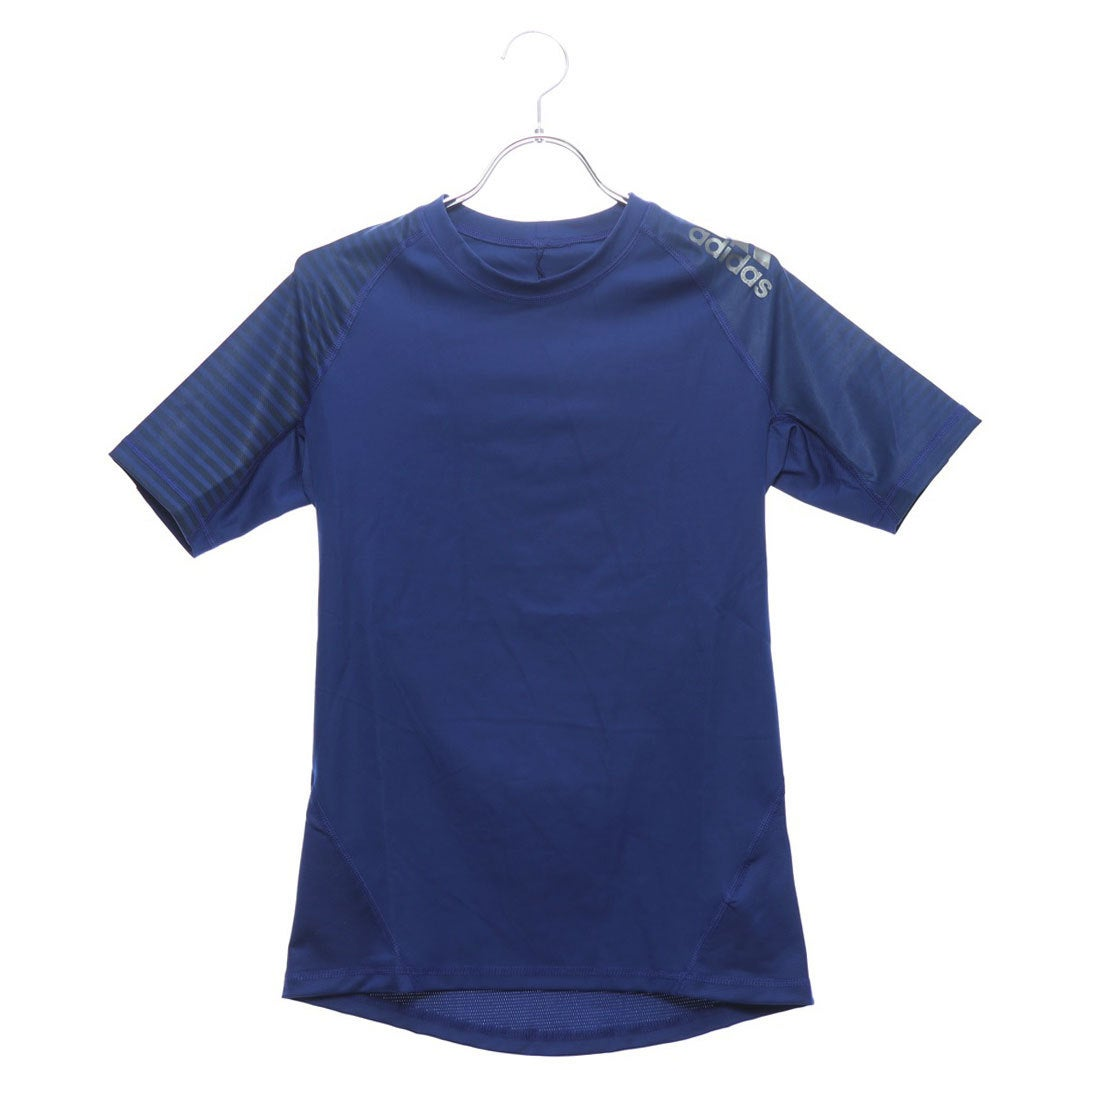 Clothing, Shoes & Accessories Men's Clothing Blue Adidas Alphaskin Sport Mens Short Sleeve Training Top